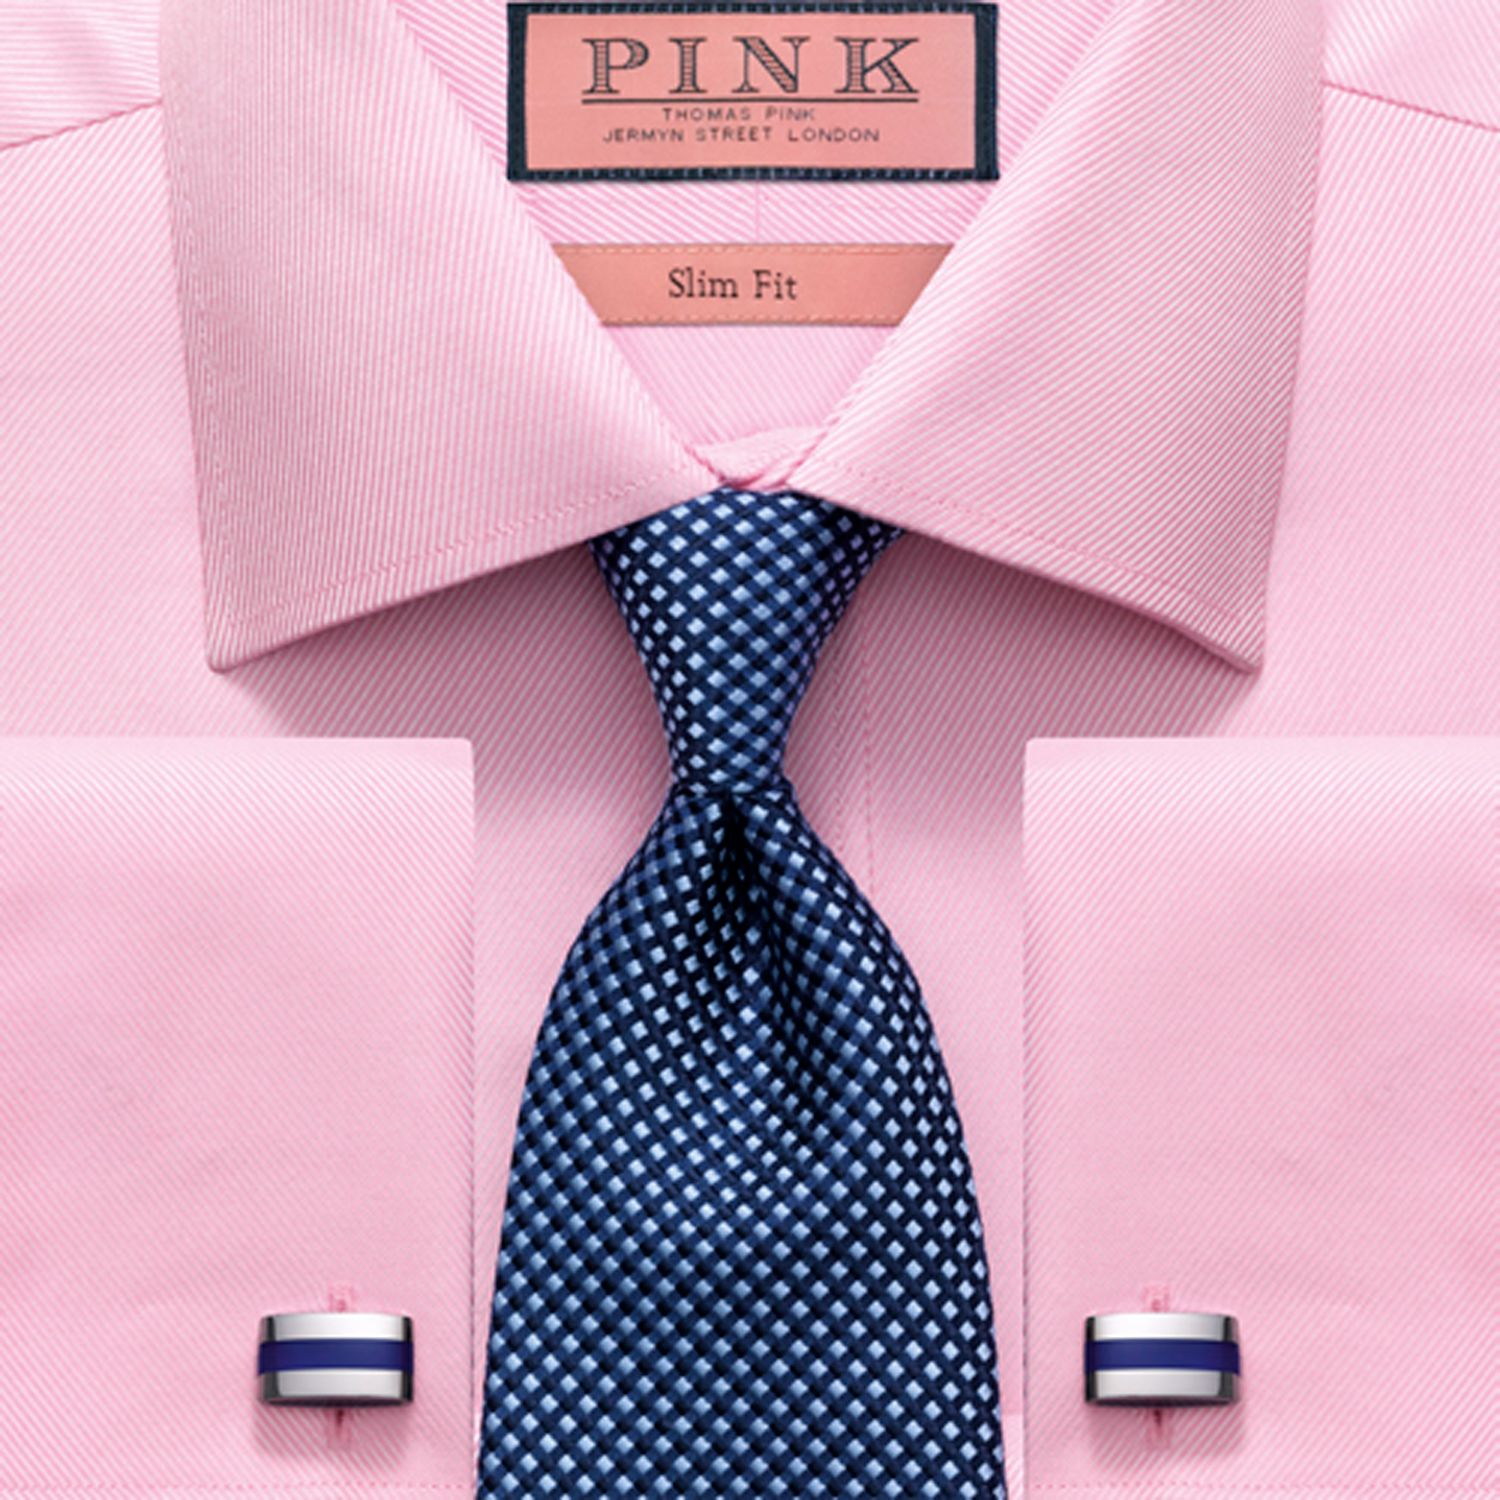 The 25 best thomas pink shirts ideas on pinterest for Pink shirt tie combo